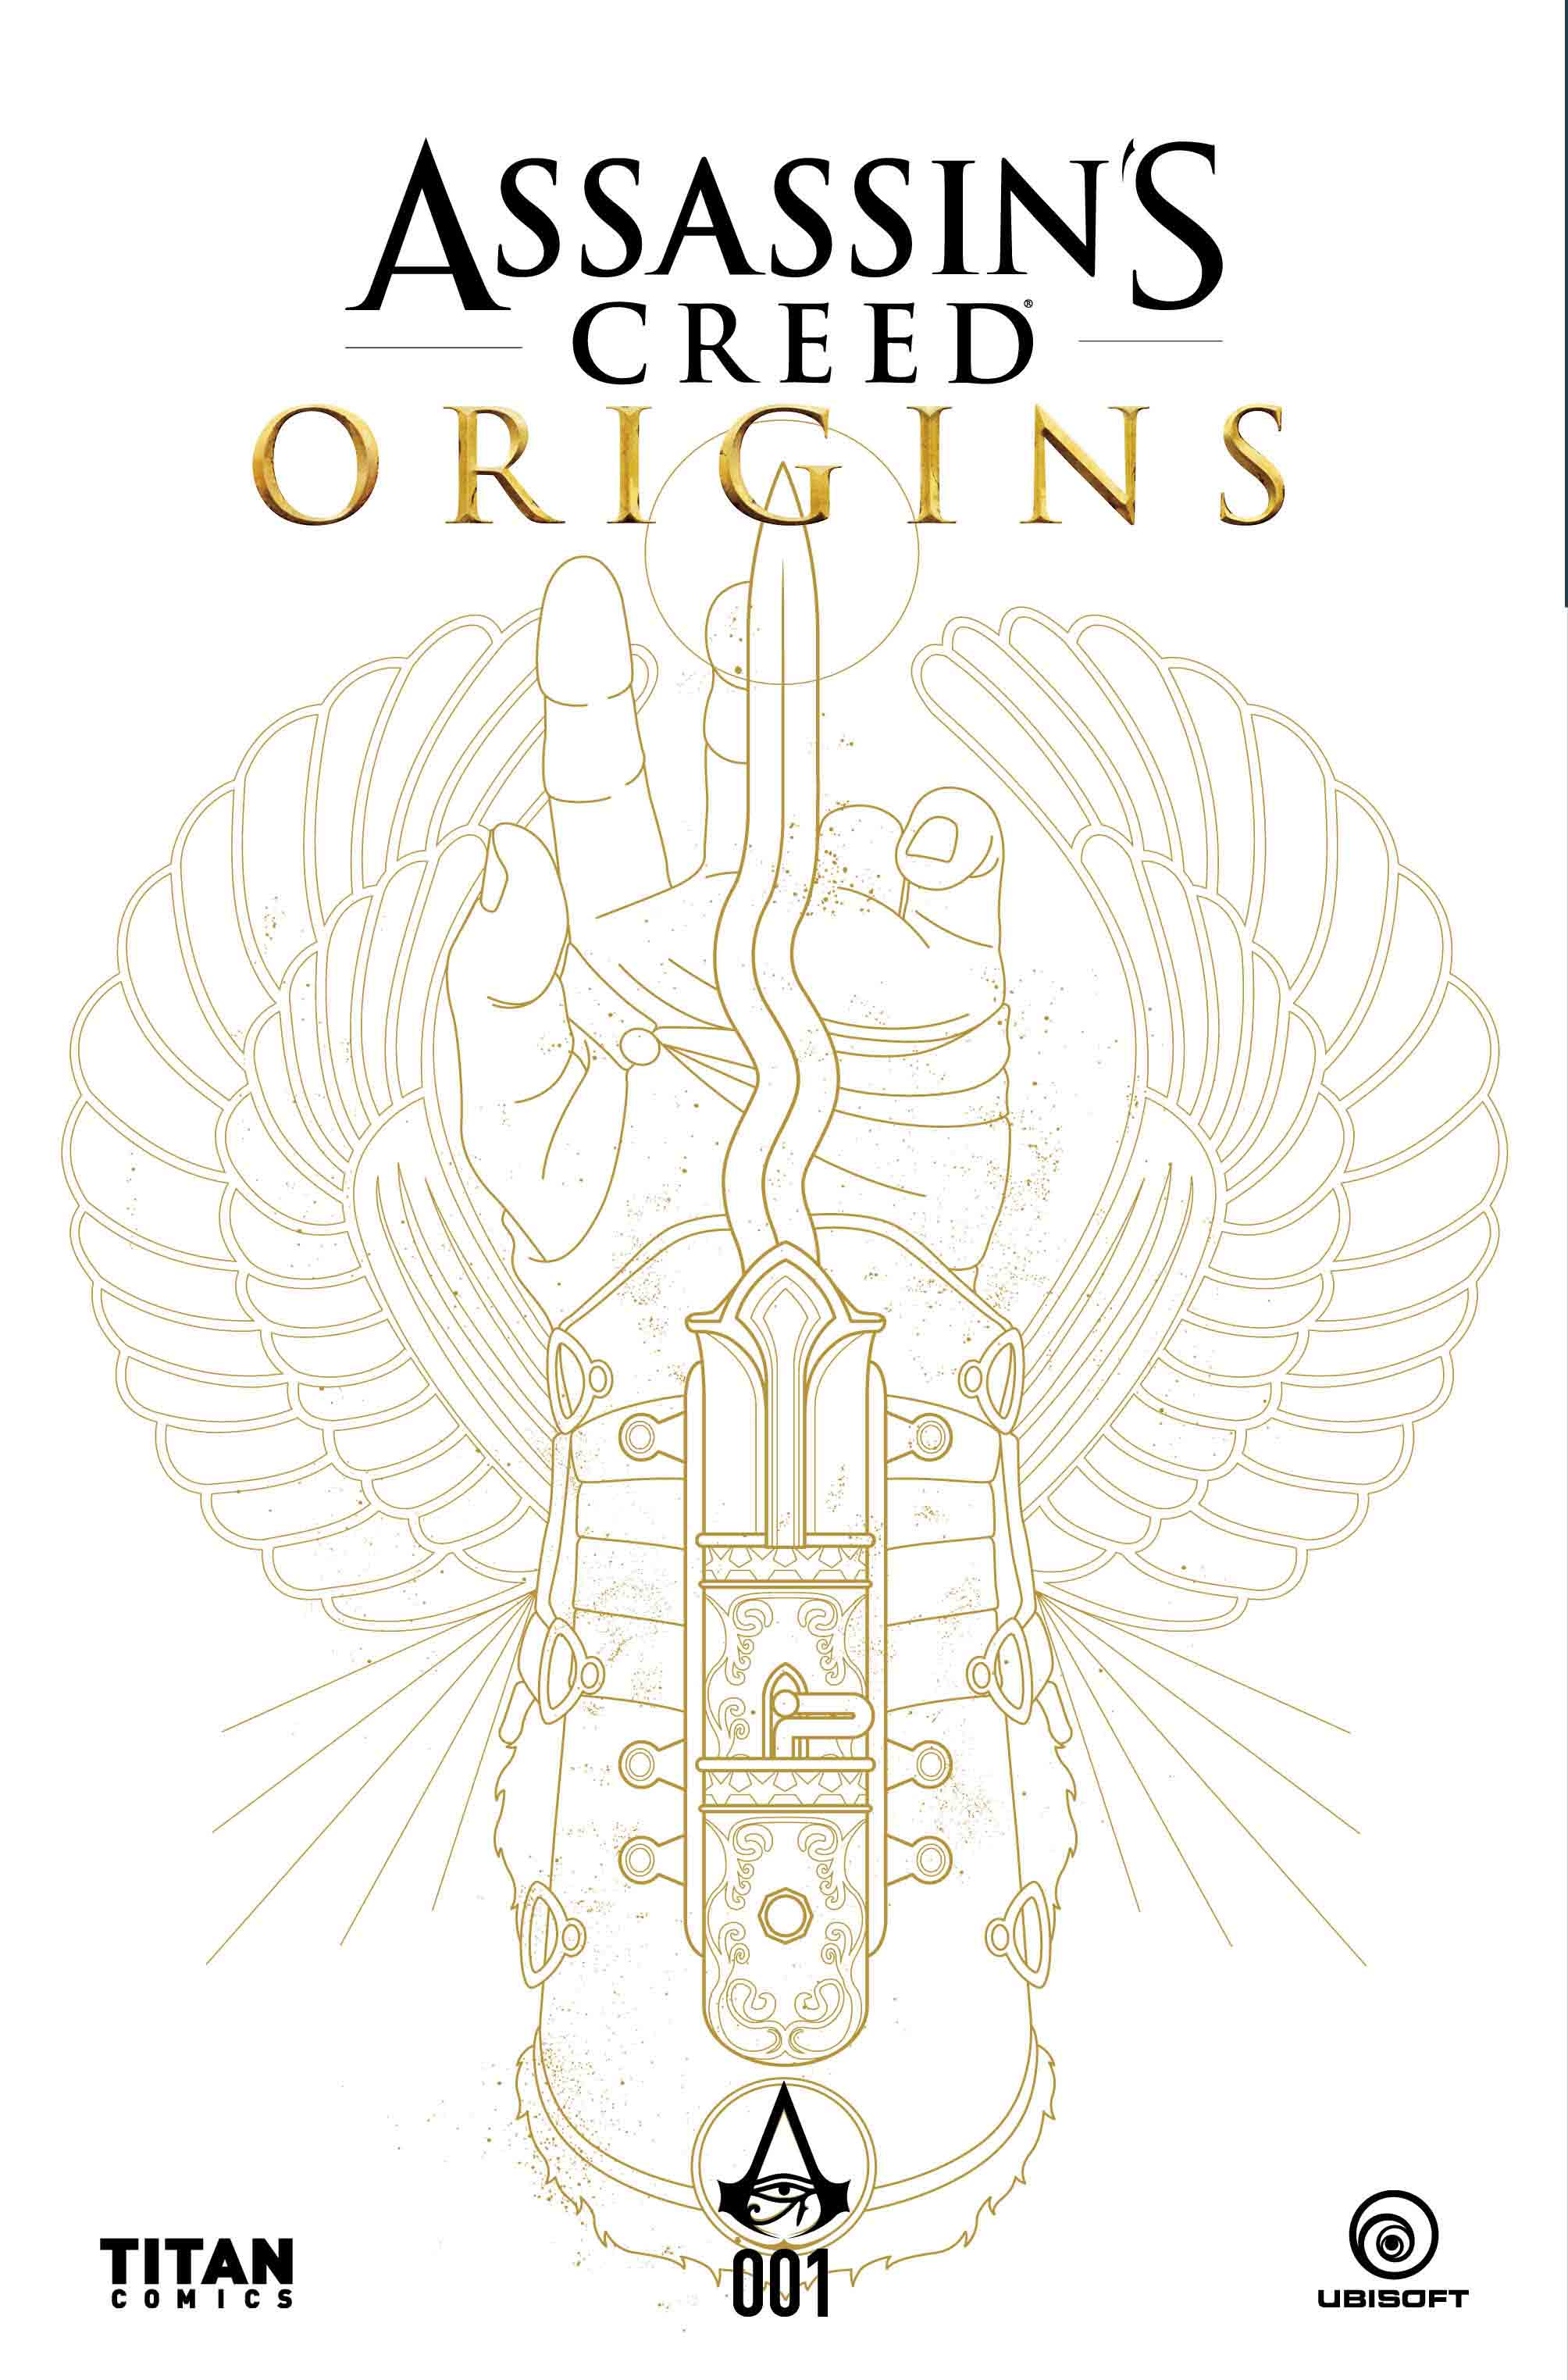 Ubisoft-Assassin's Creed Origins comicbook miniseries